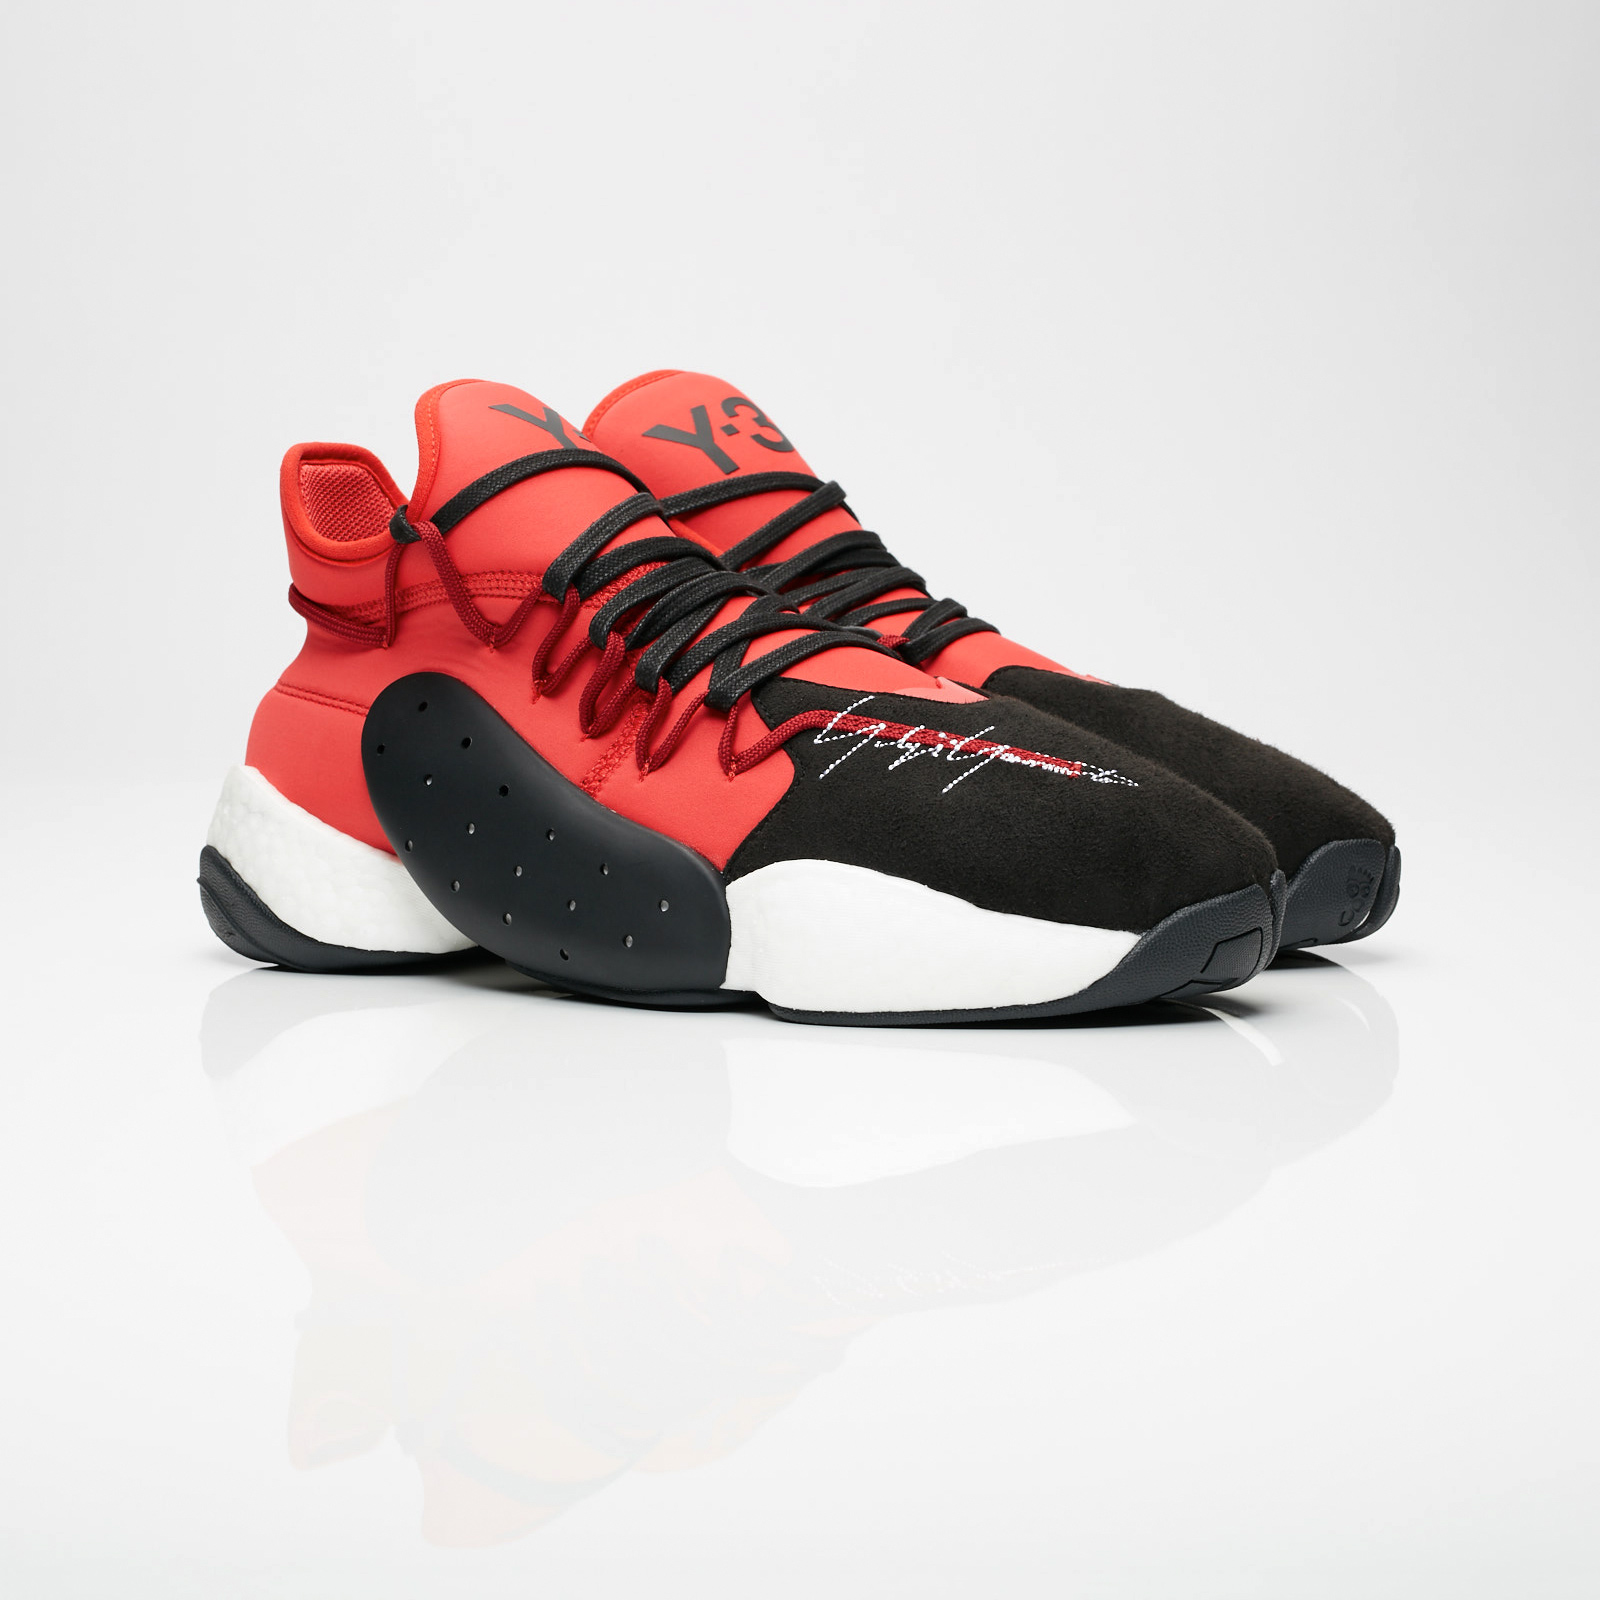 4daf07993bd adidas Y-3 BYW Bball - Bc0338 - Sneakersnstuff   sneakers ...